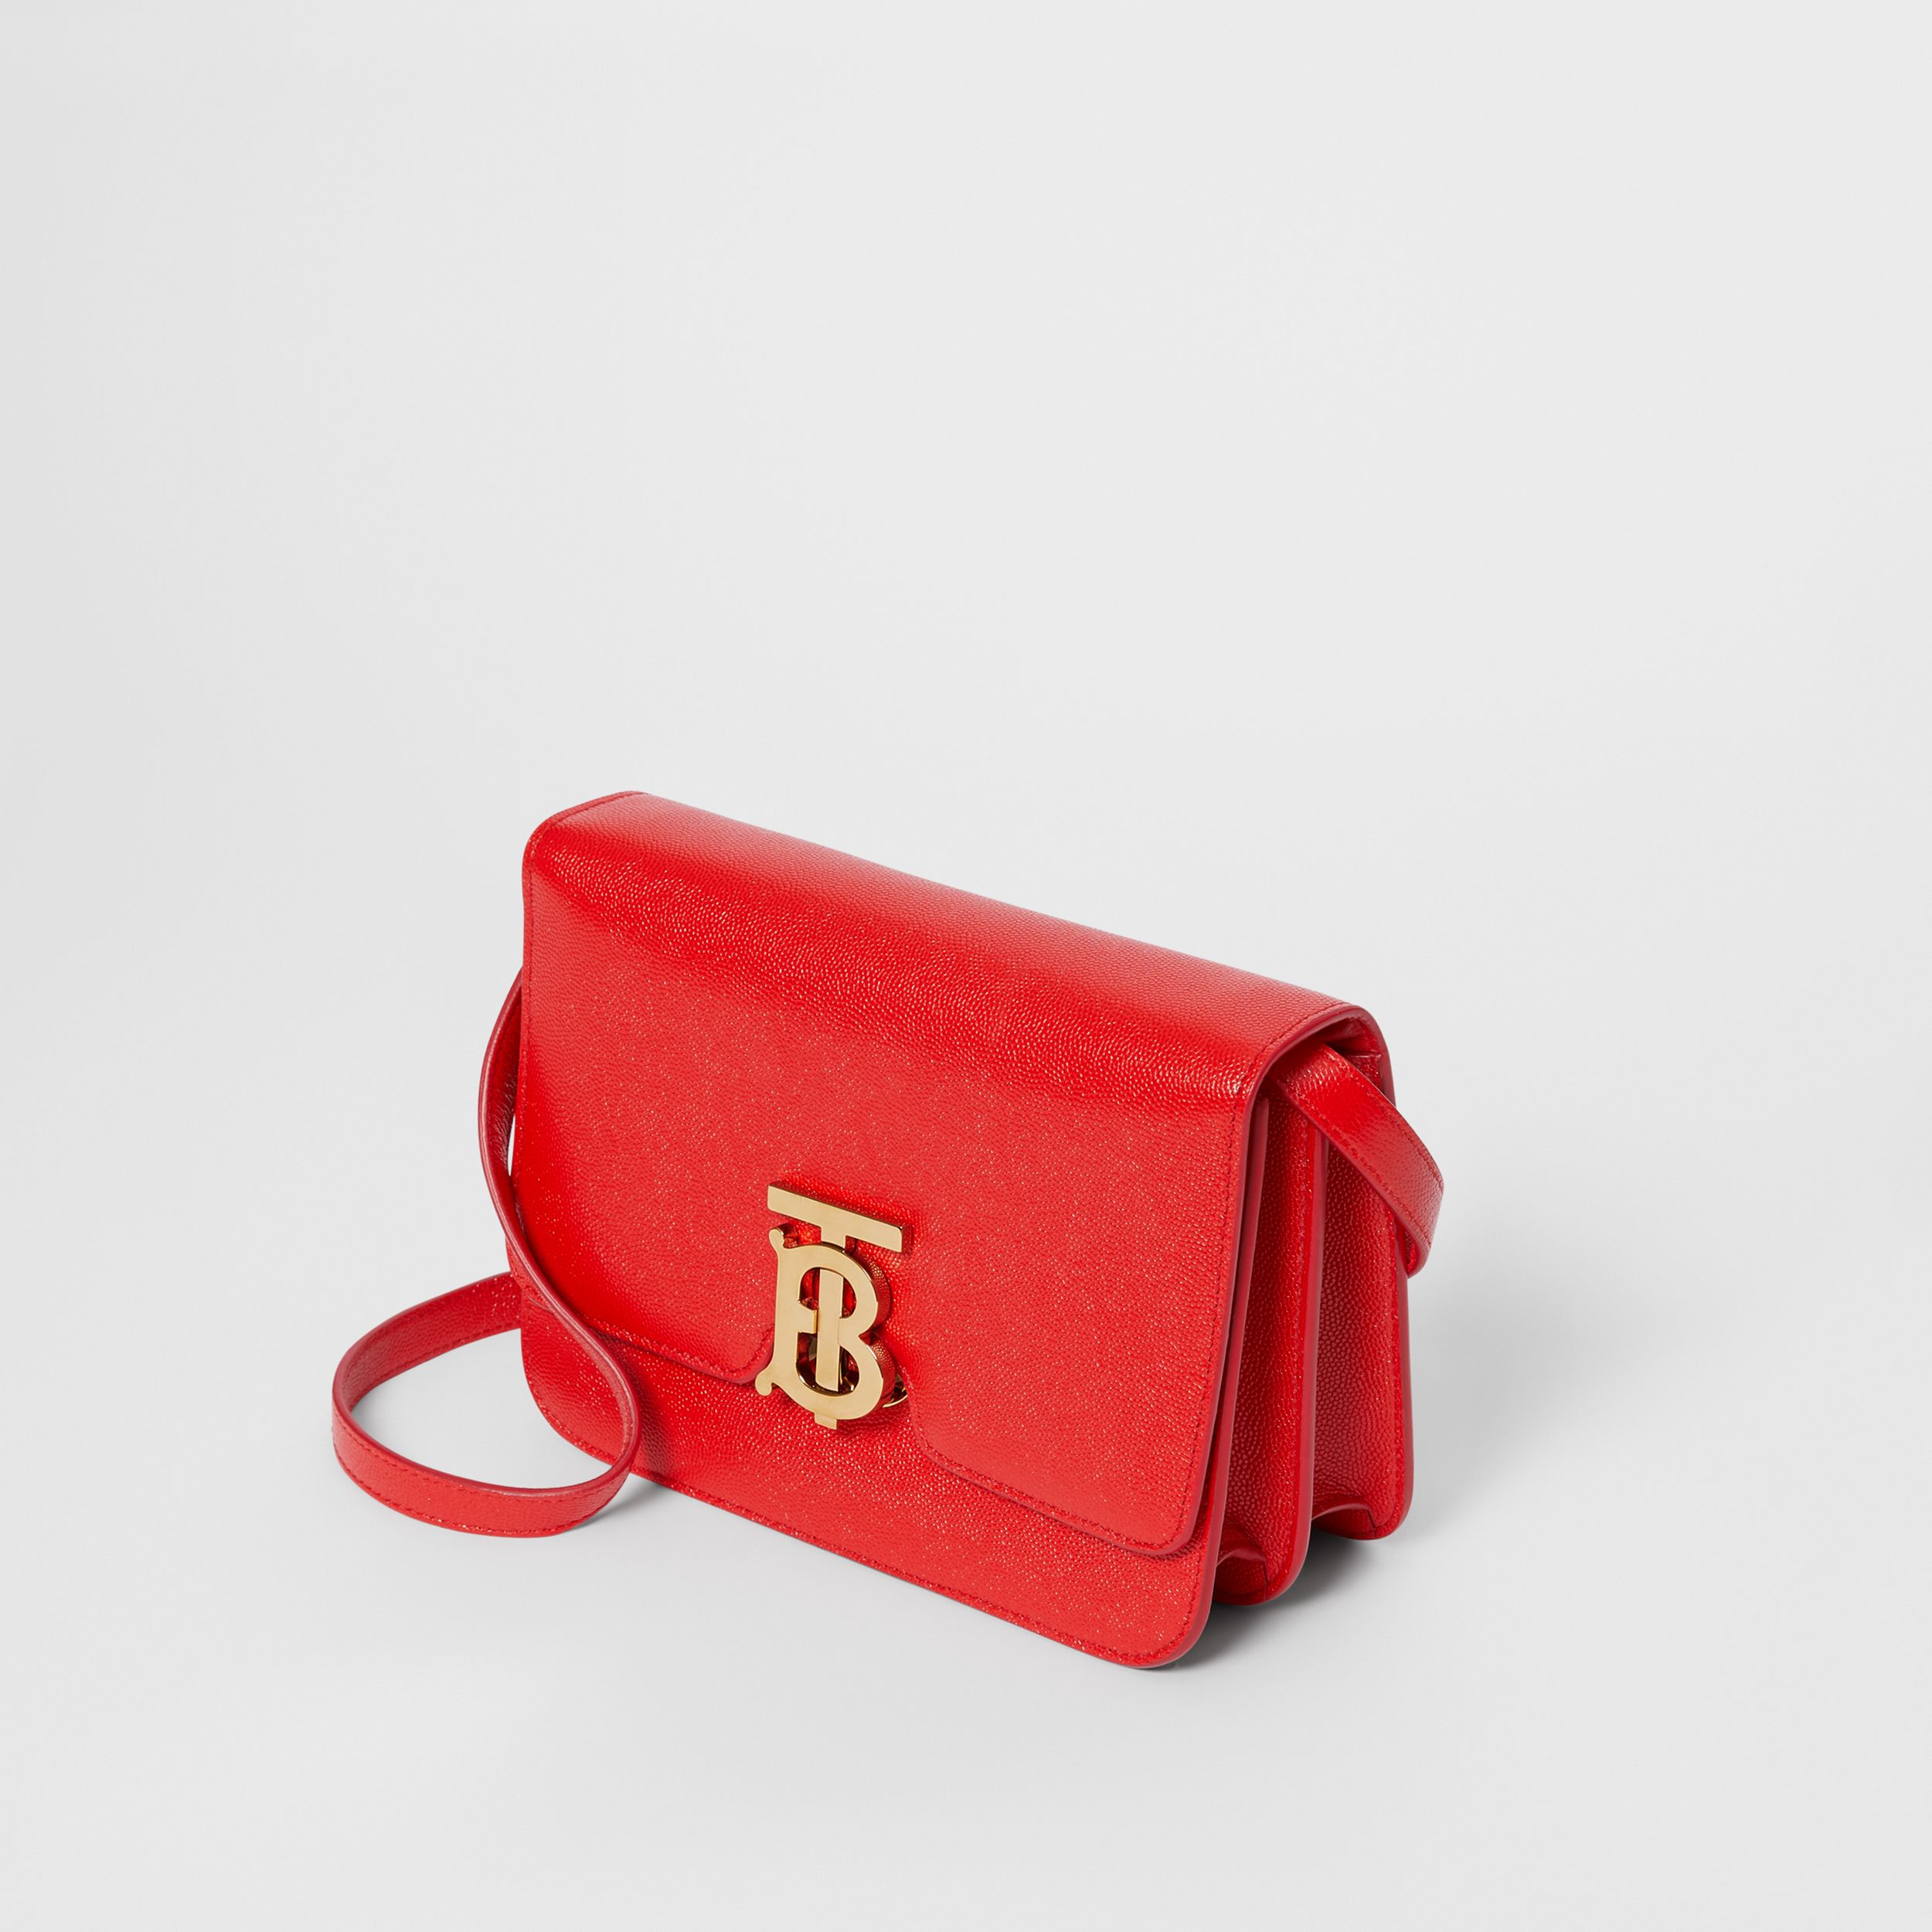 Small Grainy Leather TB Bag in Bright Red - Women | Burberry - 4